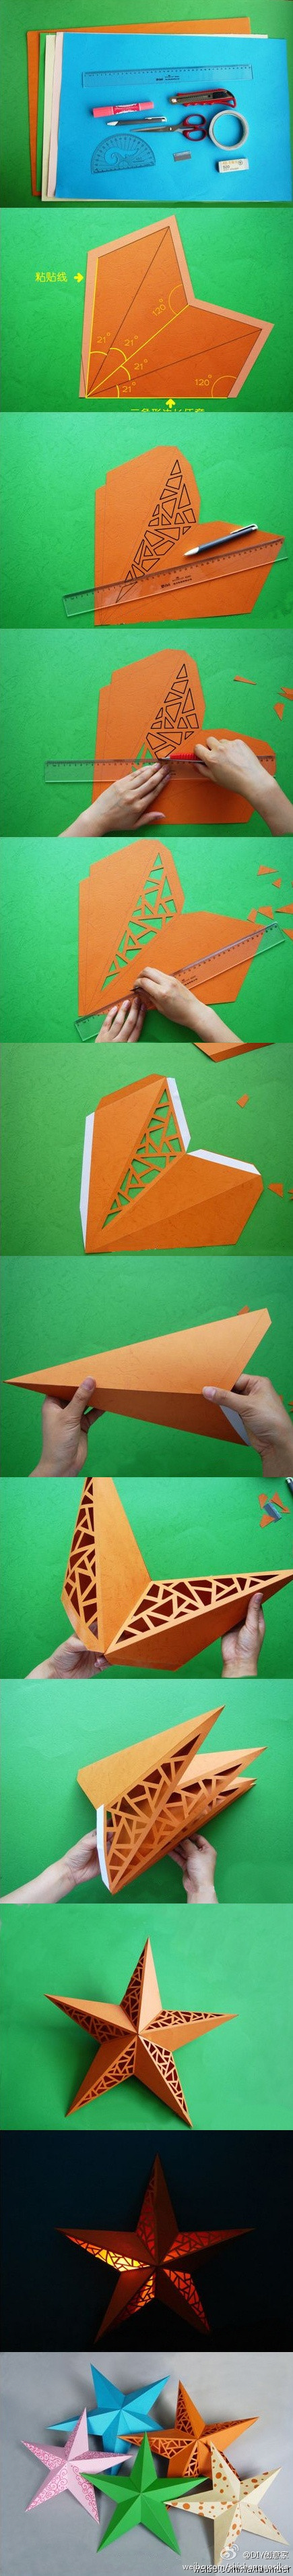 109 best images about make and take crafts on pinterest for Make it take it crafts